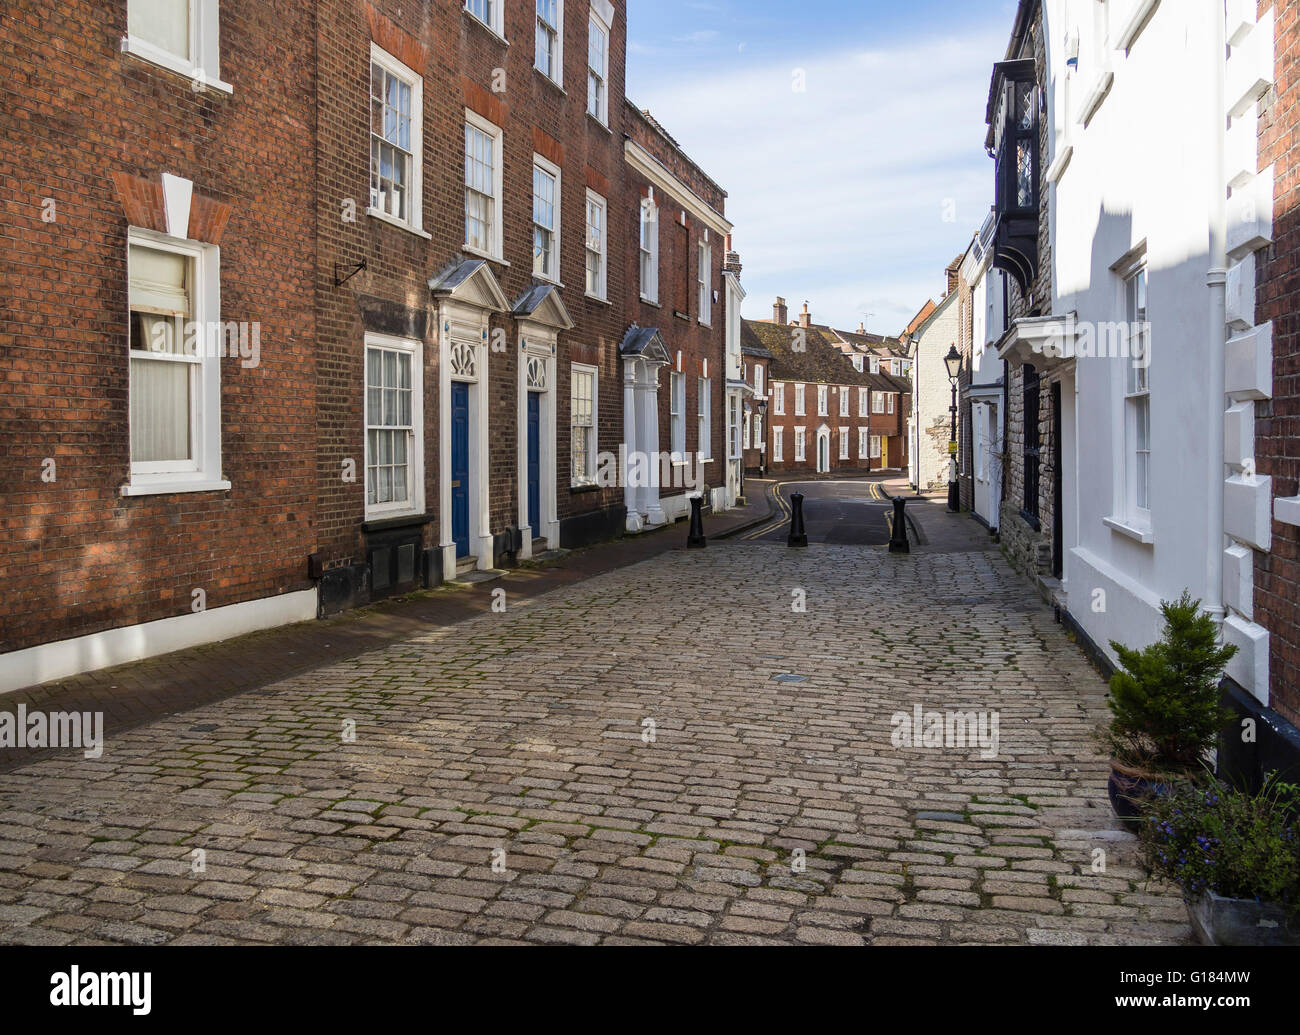 Cobbled Street in Poole Old Town, Dorset, UK Stock Photo